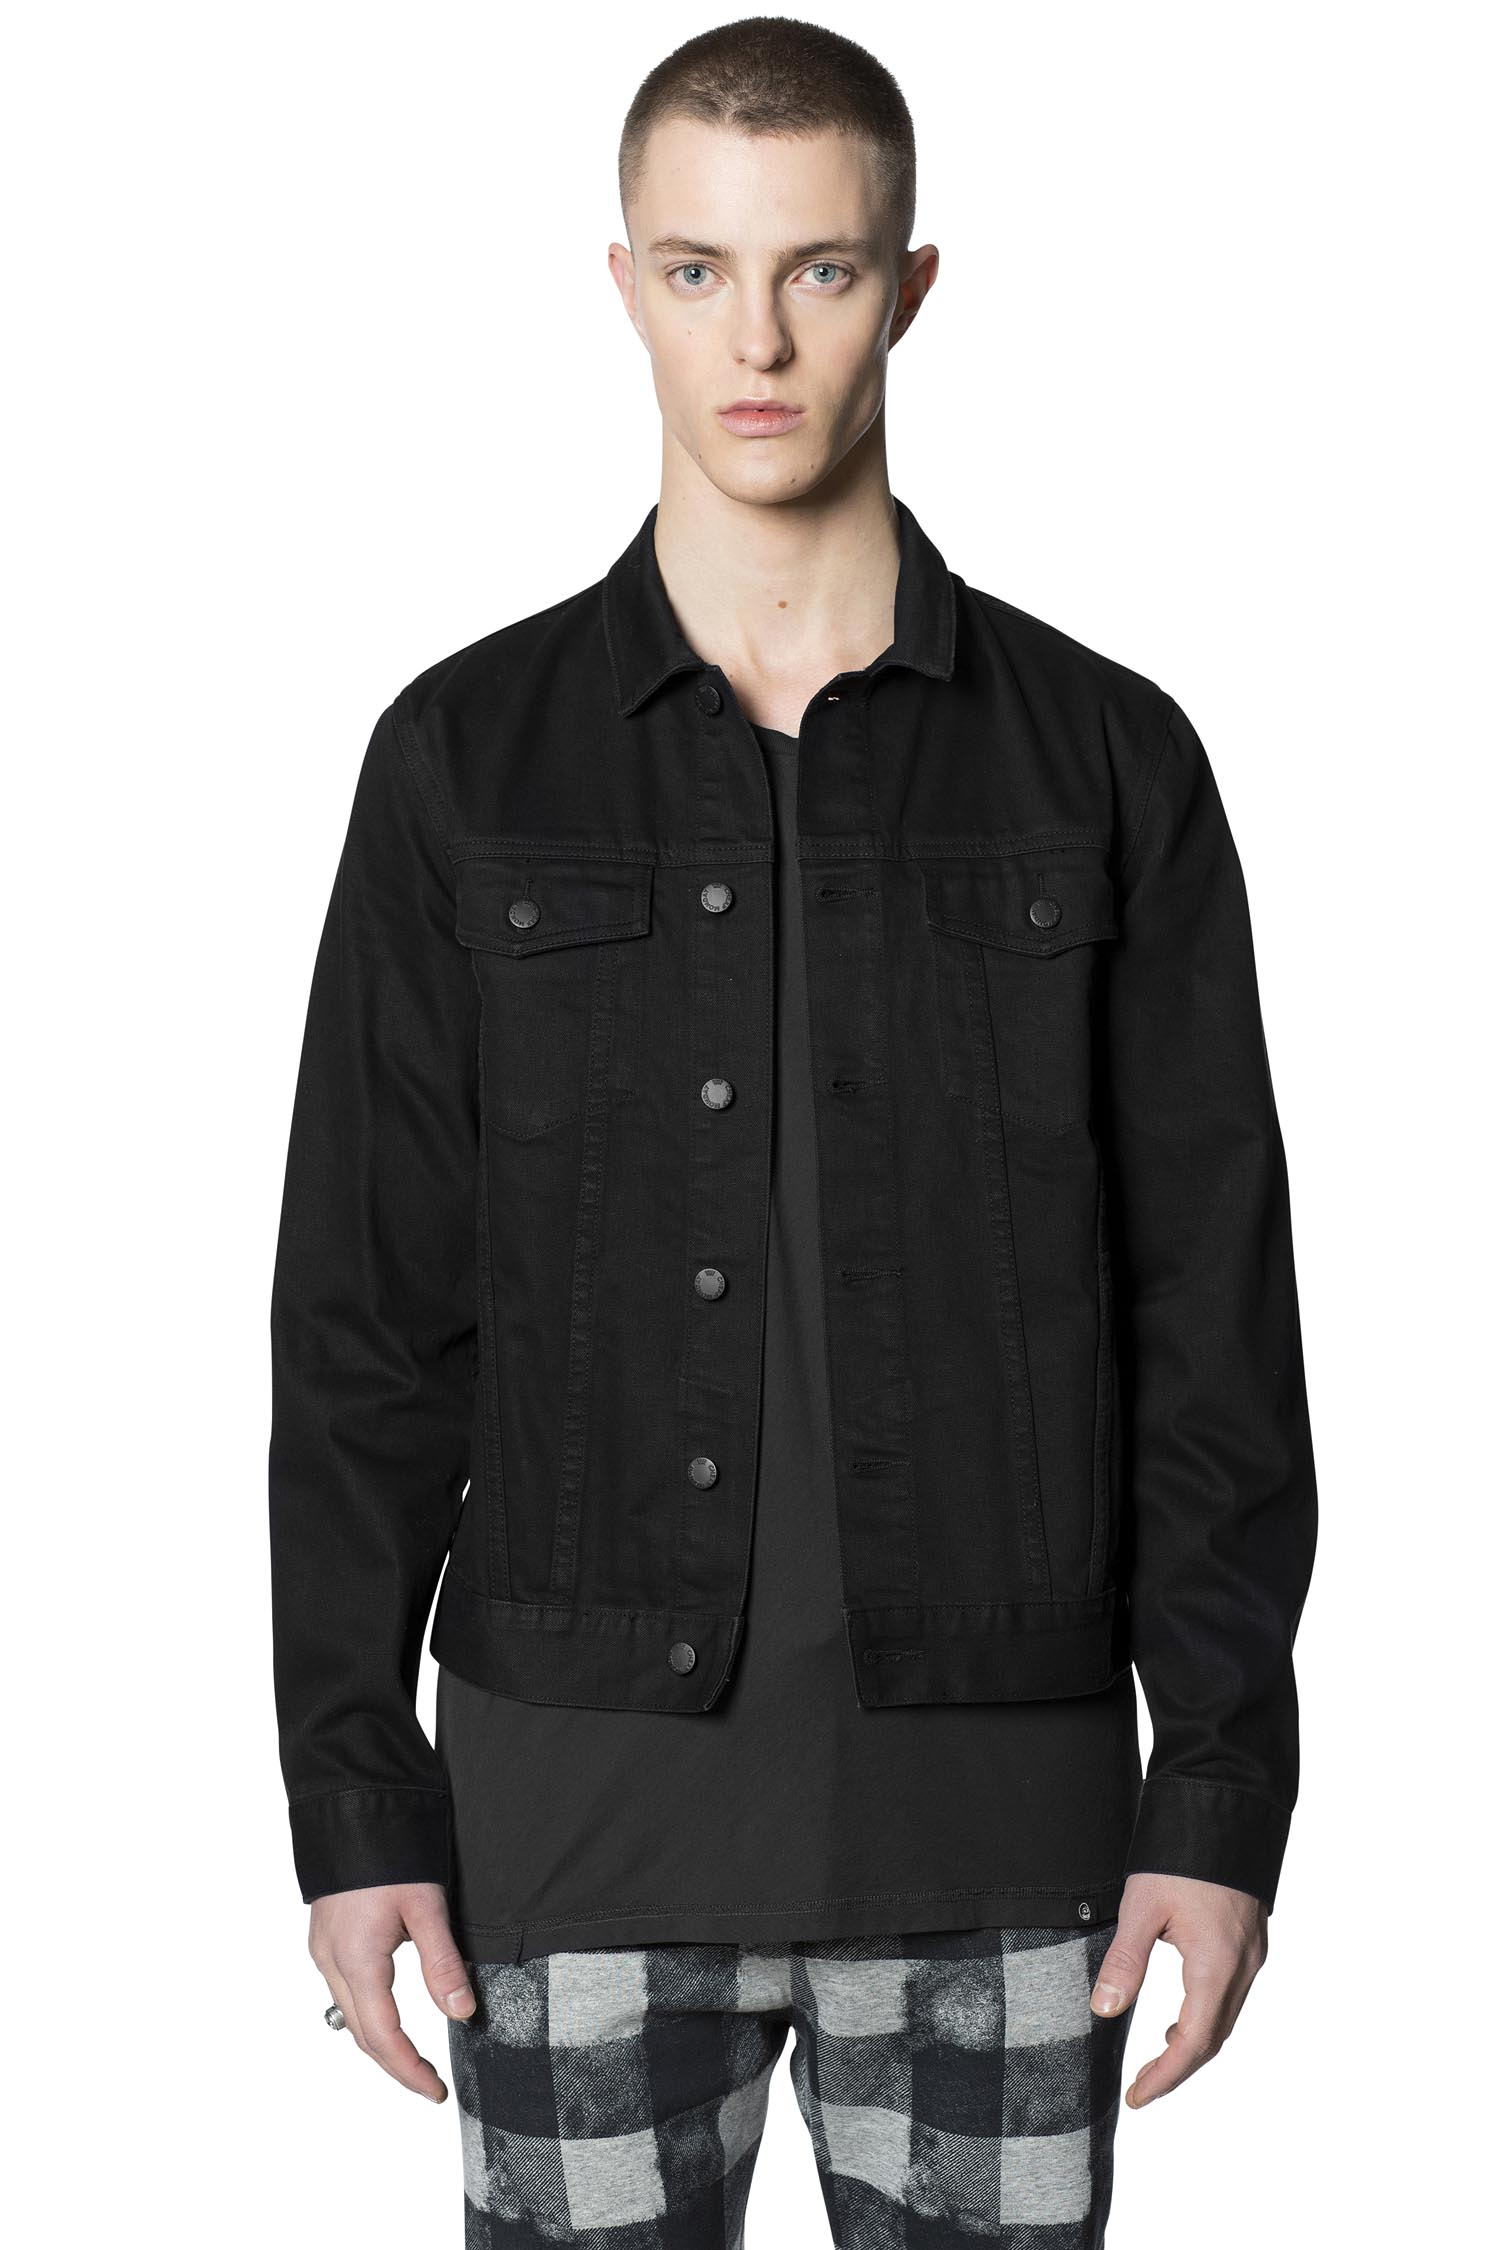 ... cheap monday image 4 of staple rinse black denim jacket in rinse black APKBULT